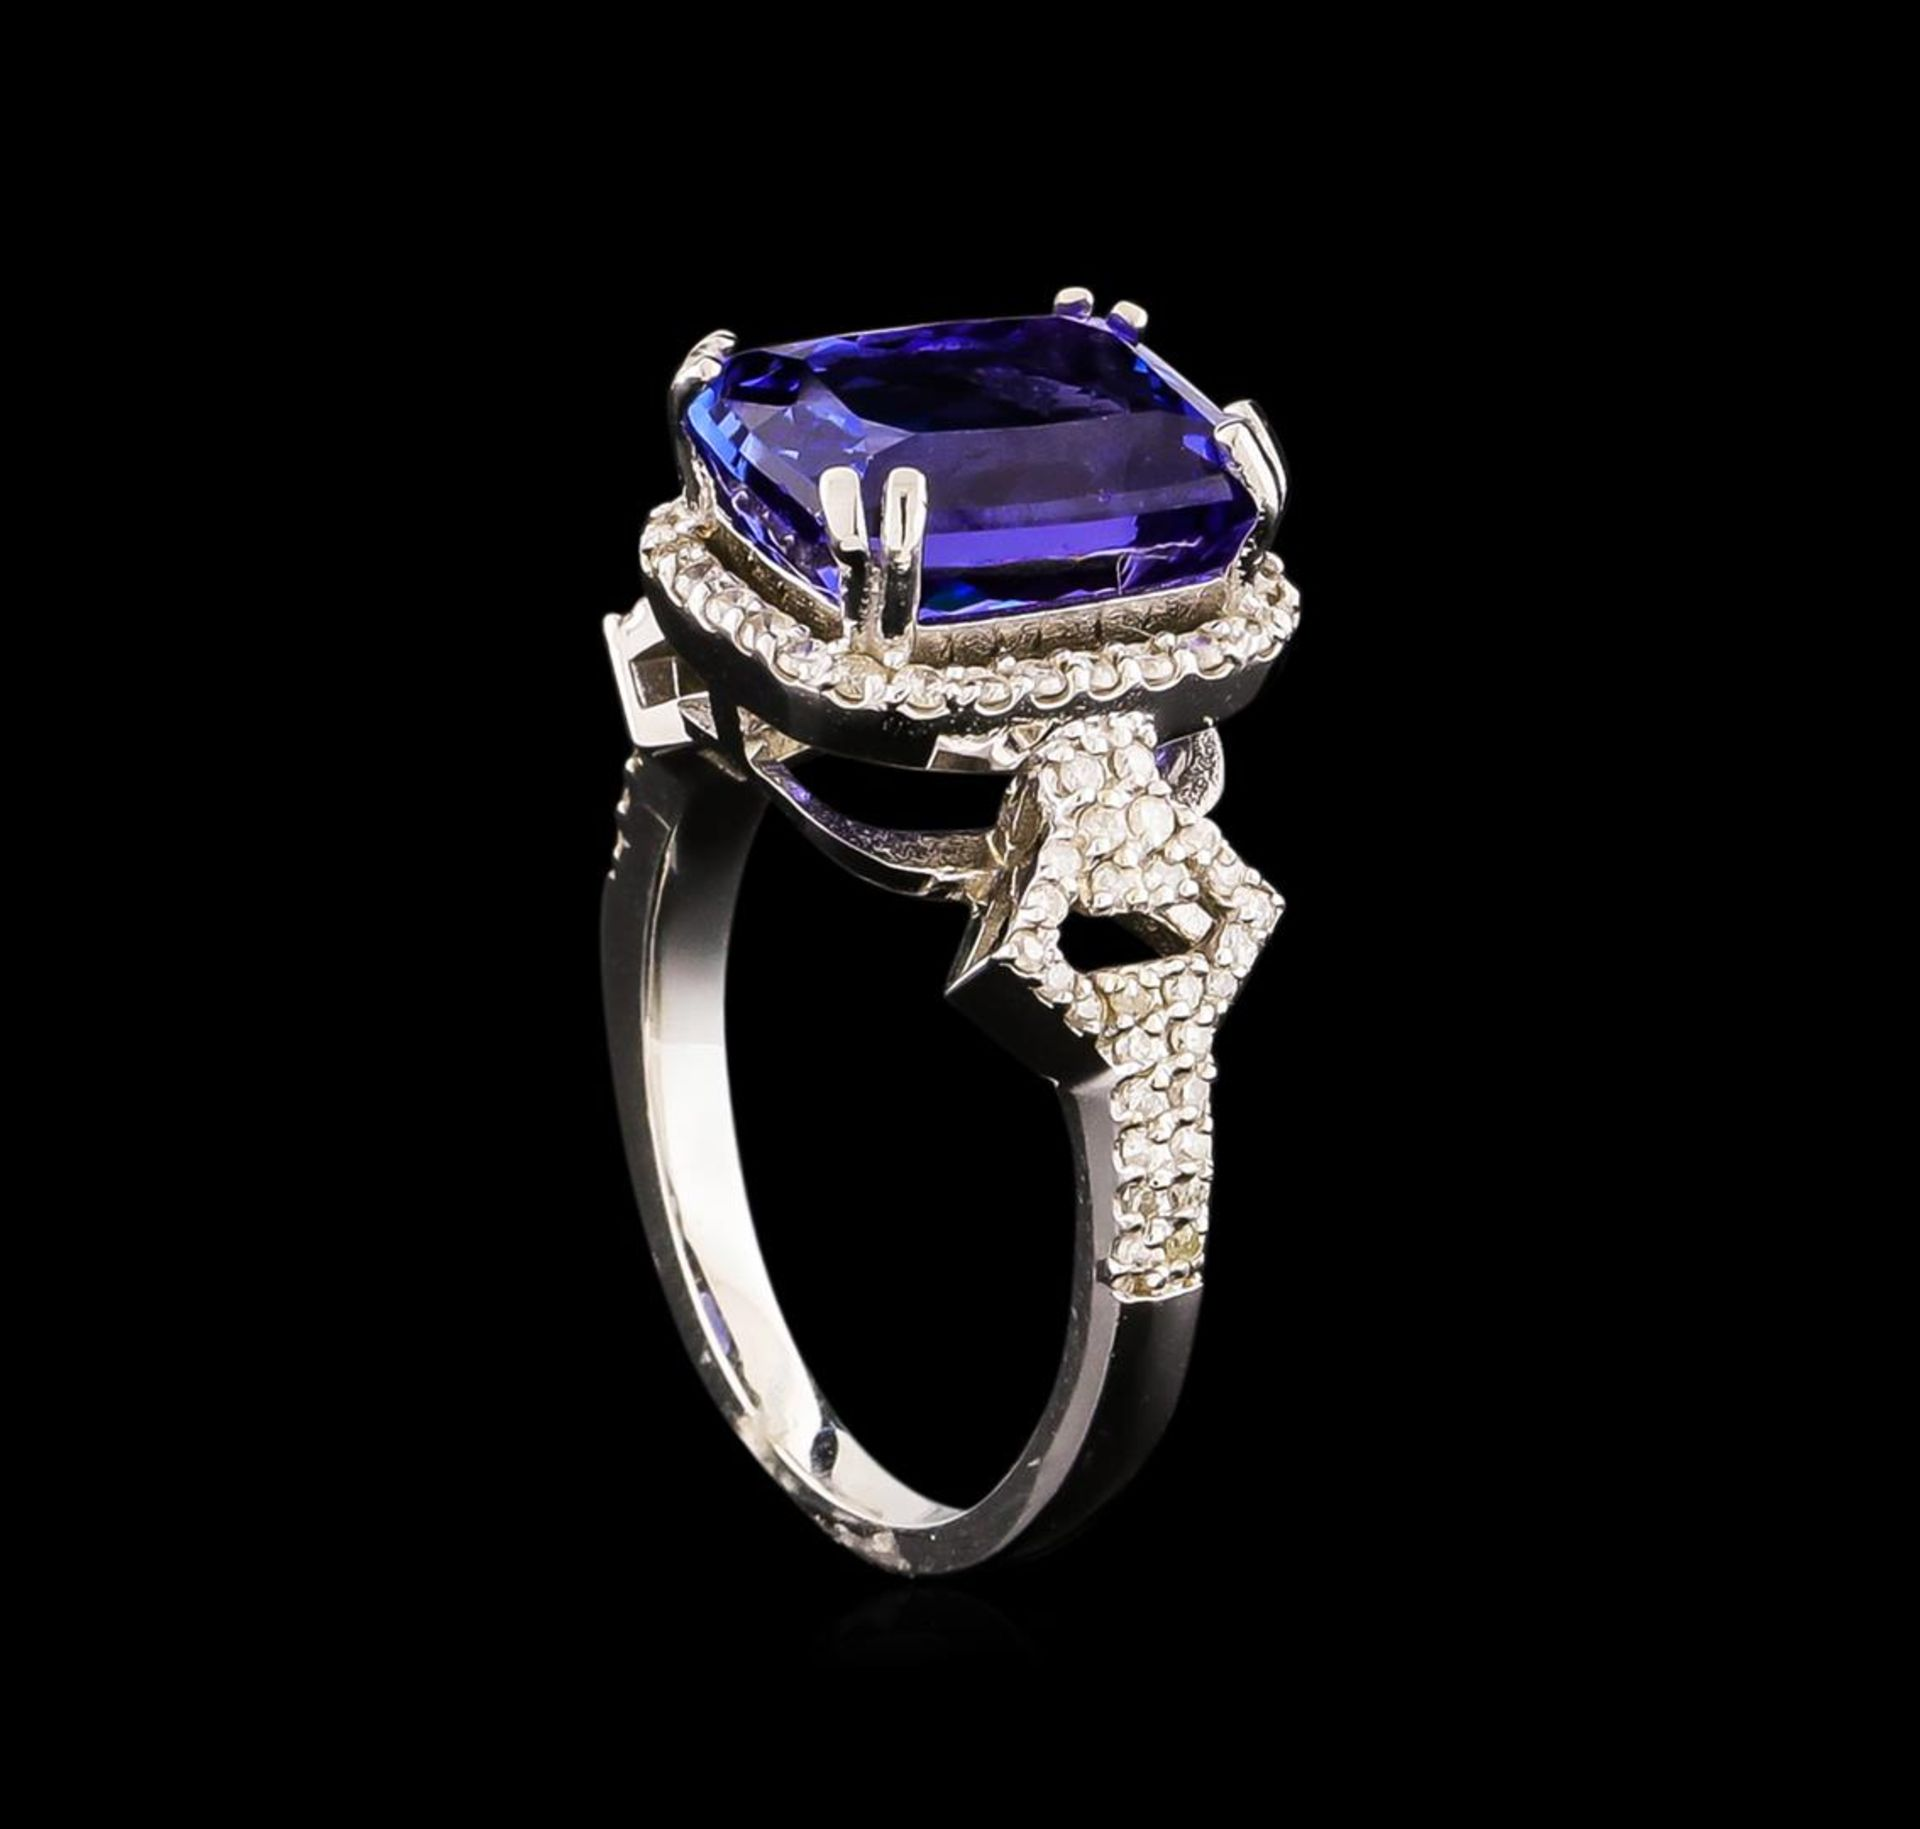 14KT White Gold 3.40 ctw Tanzanite and Diamond Ring - Image 4 of 5